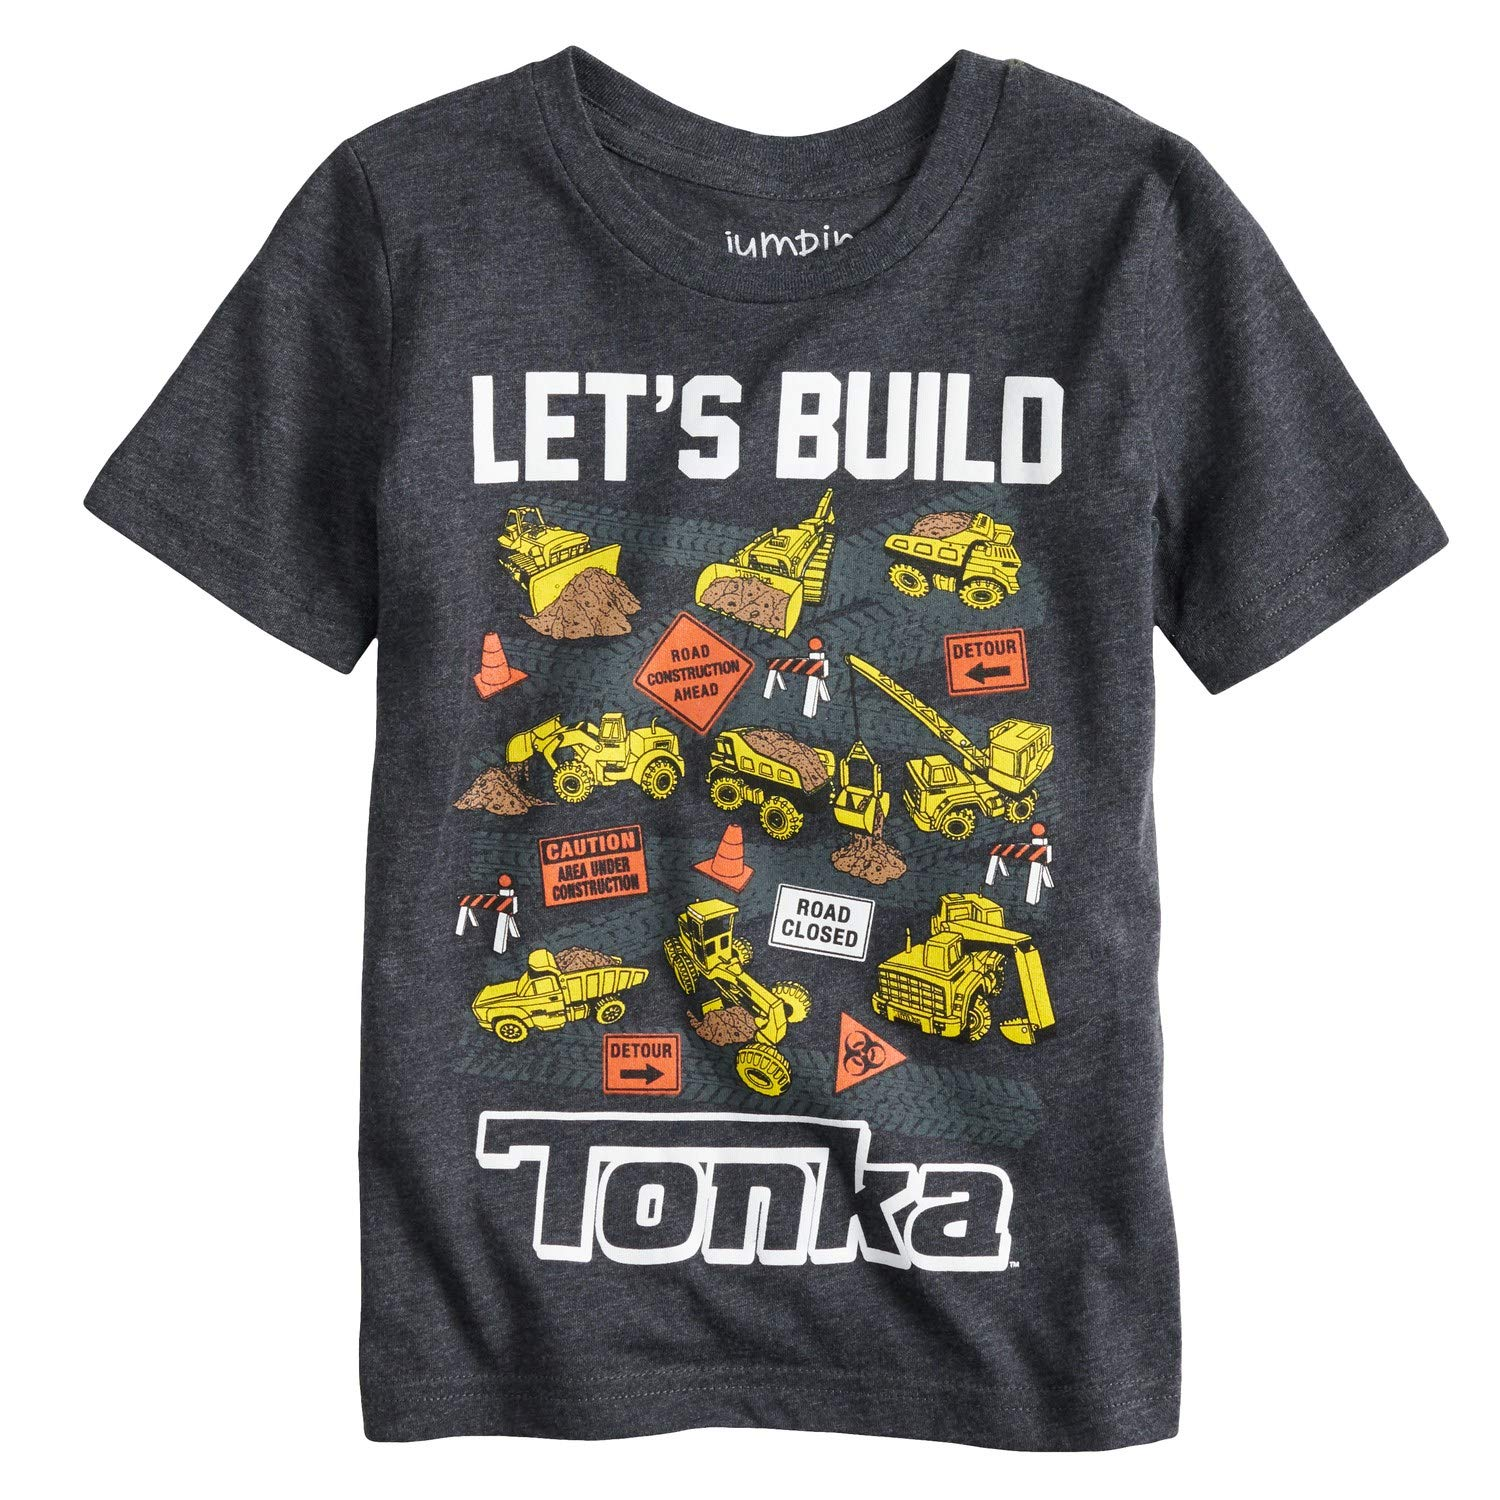 Jumping Beans Toddler Boys 2T-5T Let's Build Tonka Graphic Tee